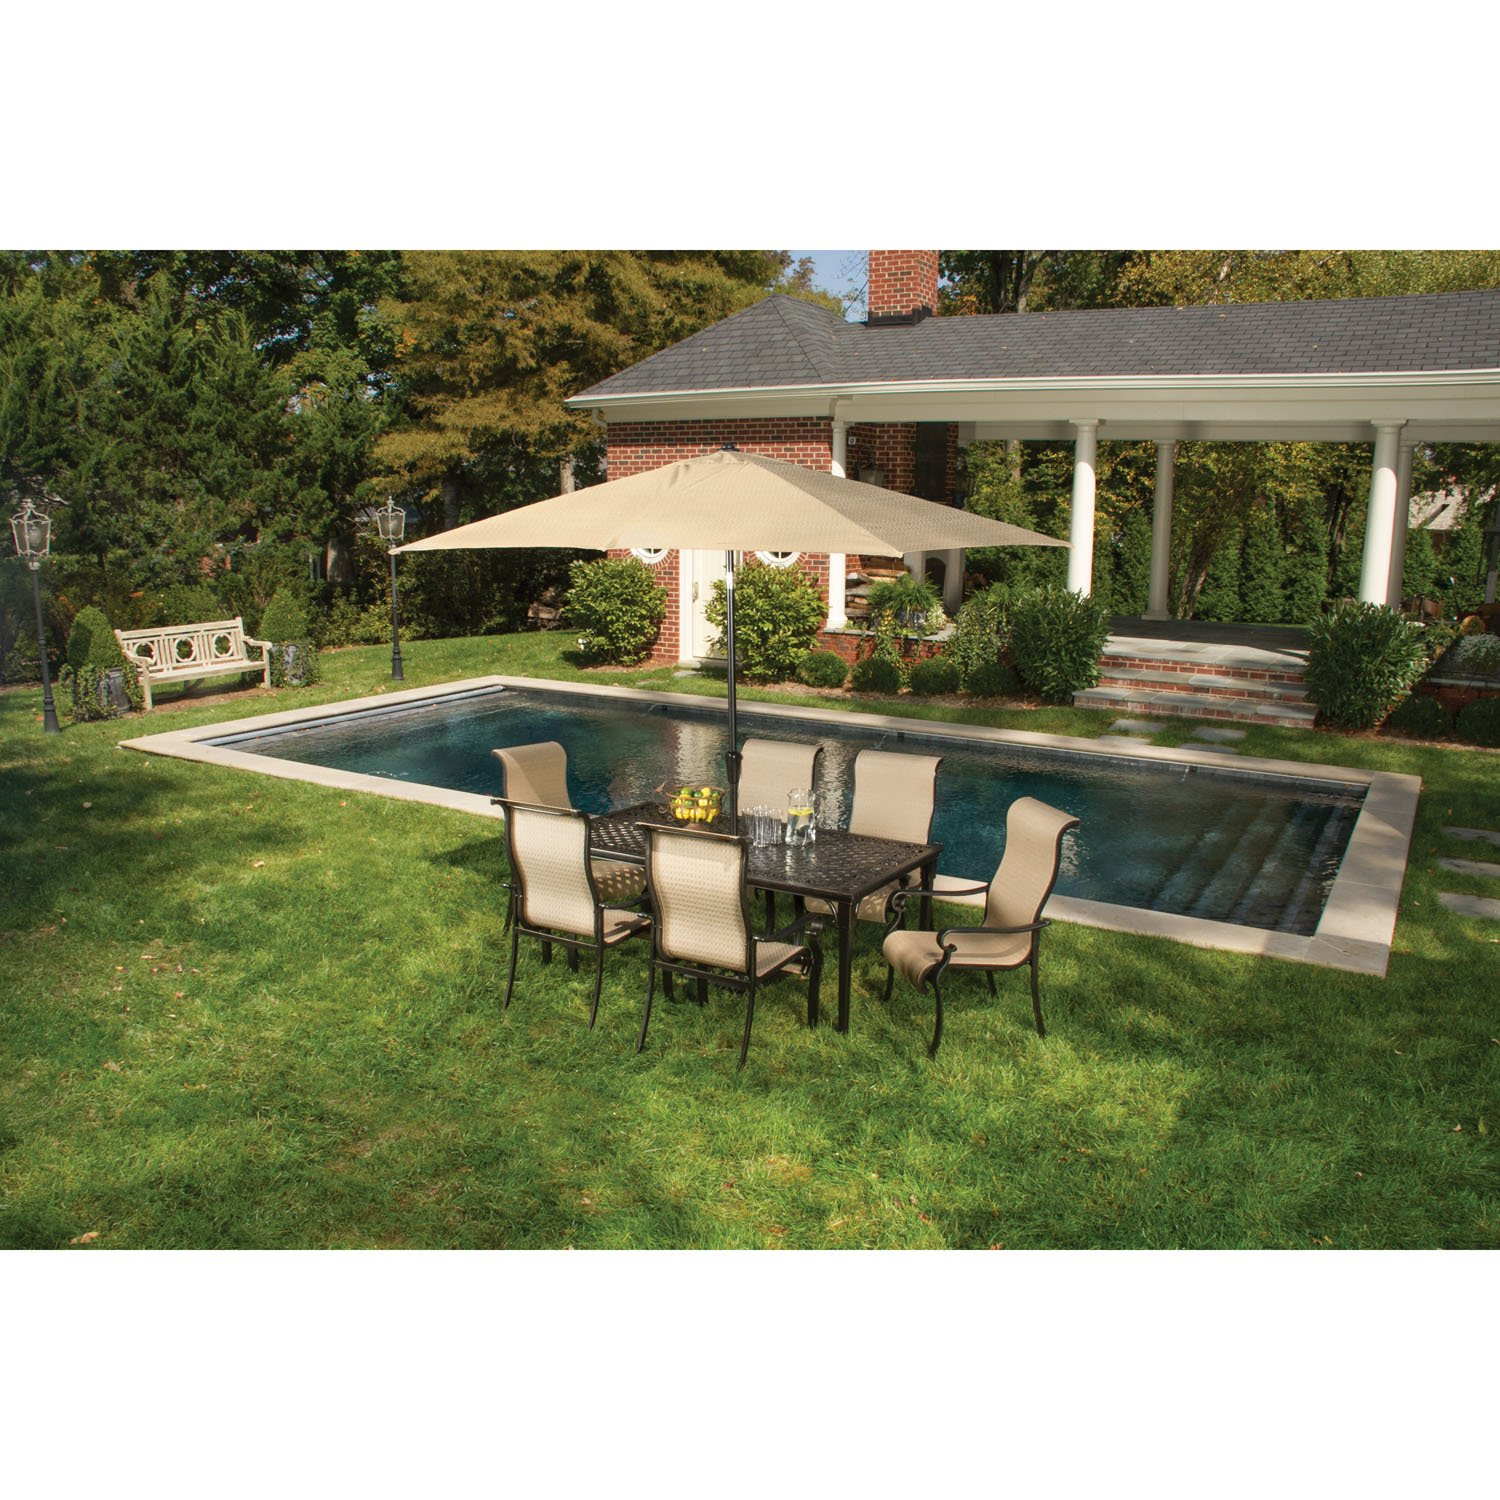 Amazon.com : Hanover Umbrella For The Brigantine Outdoor Dining Set :  Garden U0026 Outdoor